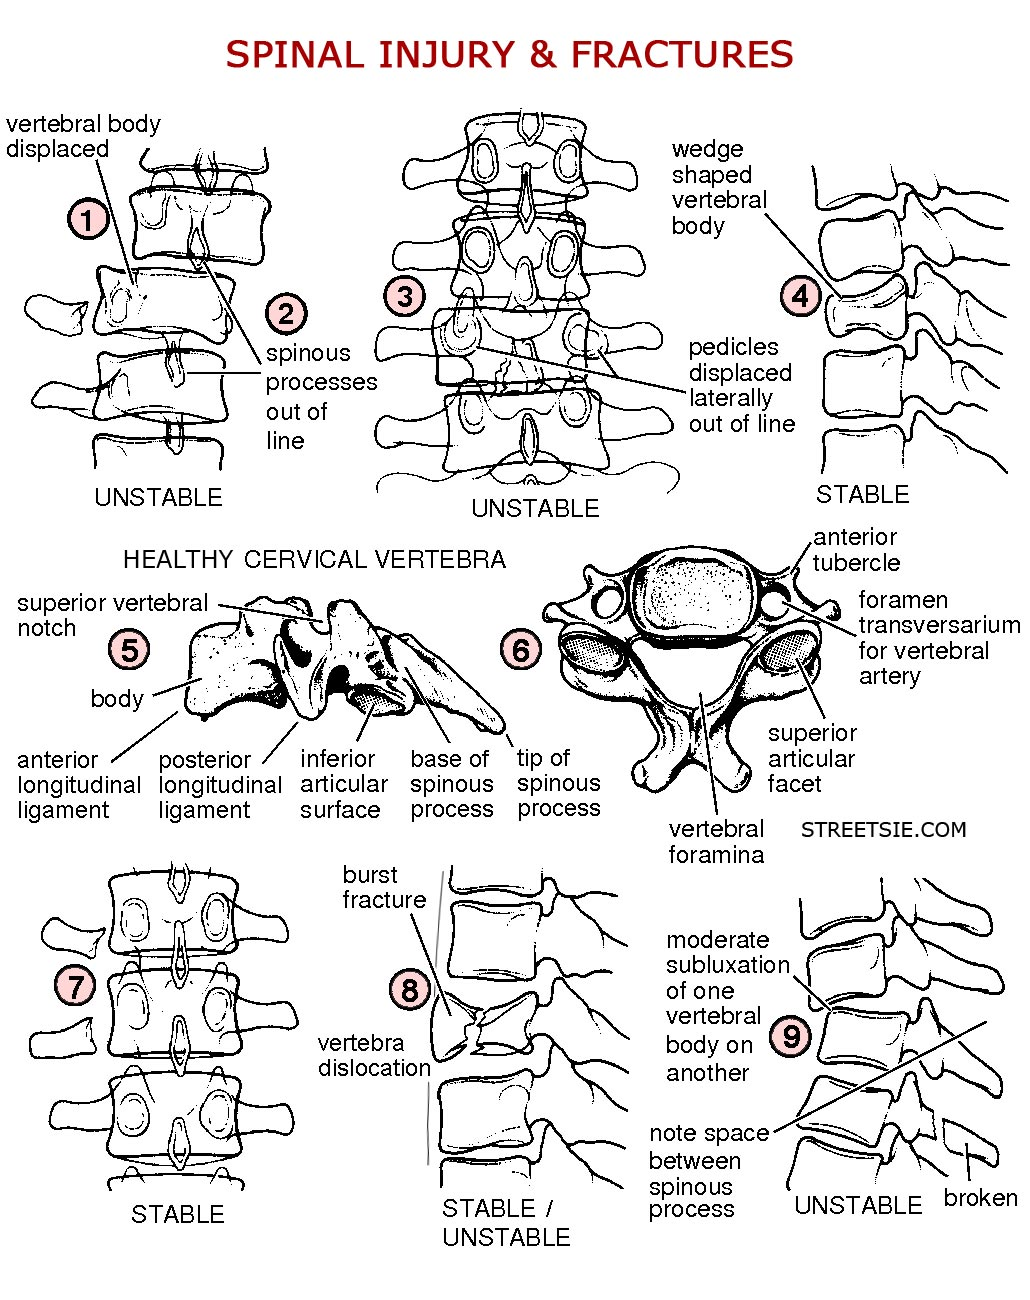 Spinal Injury Fracture and Dislocation